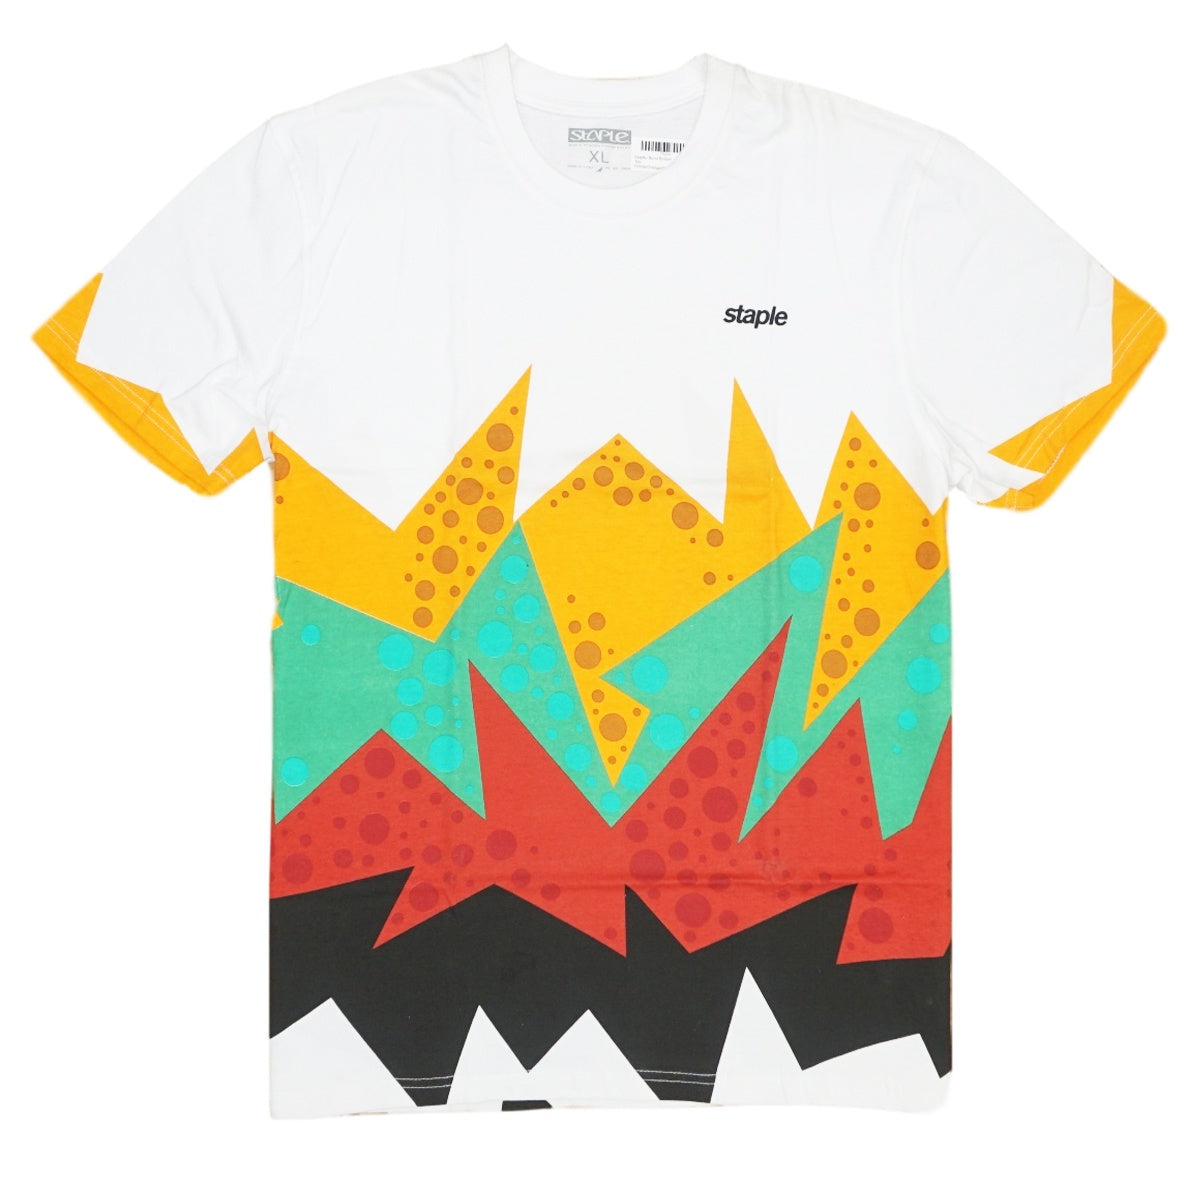 Staple- Burst Bottom Tee (White/Orange/Green)